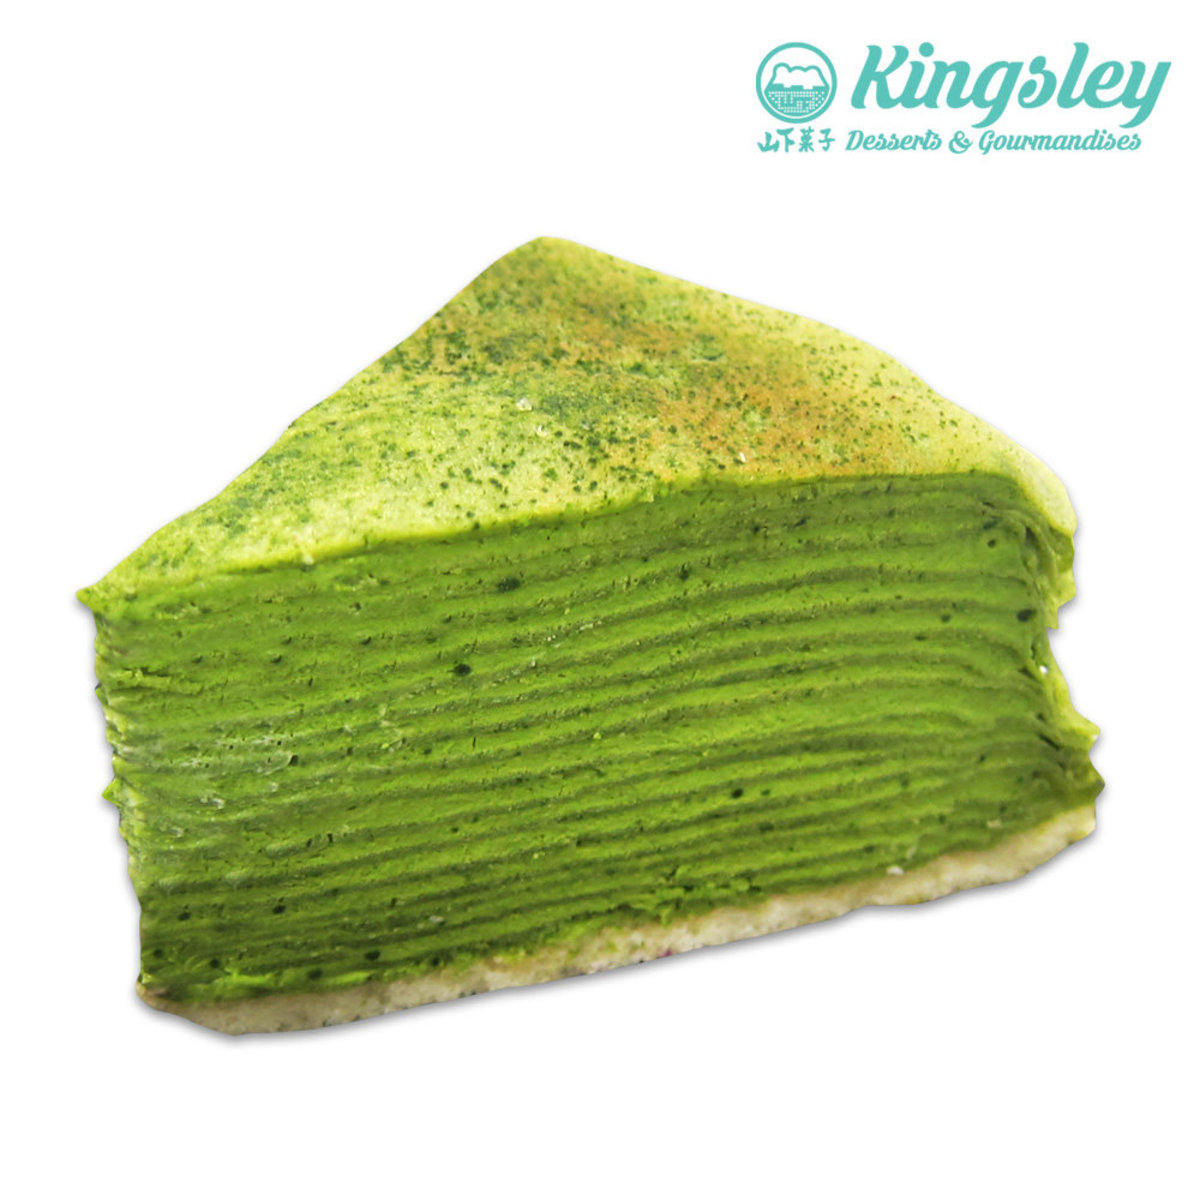 Matcha Mille Crepe Cak(Whole)Coupon